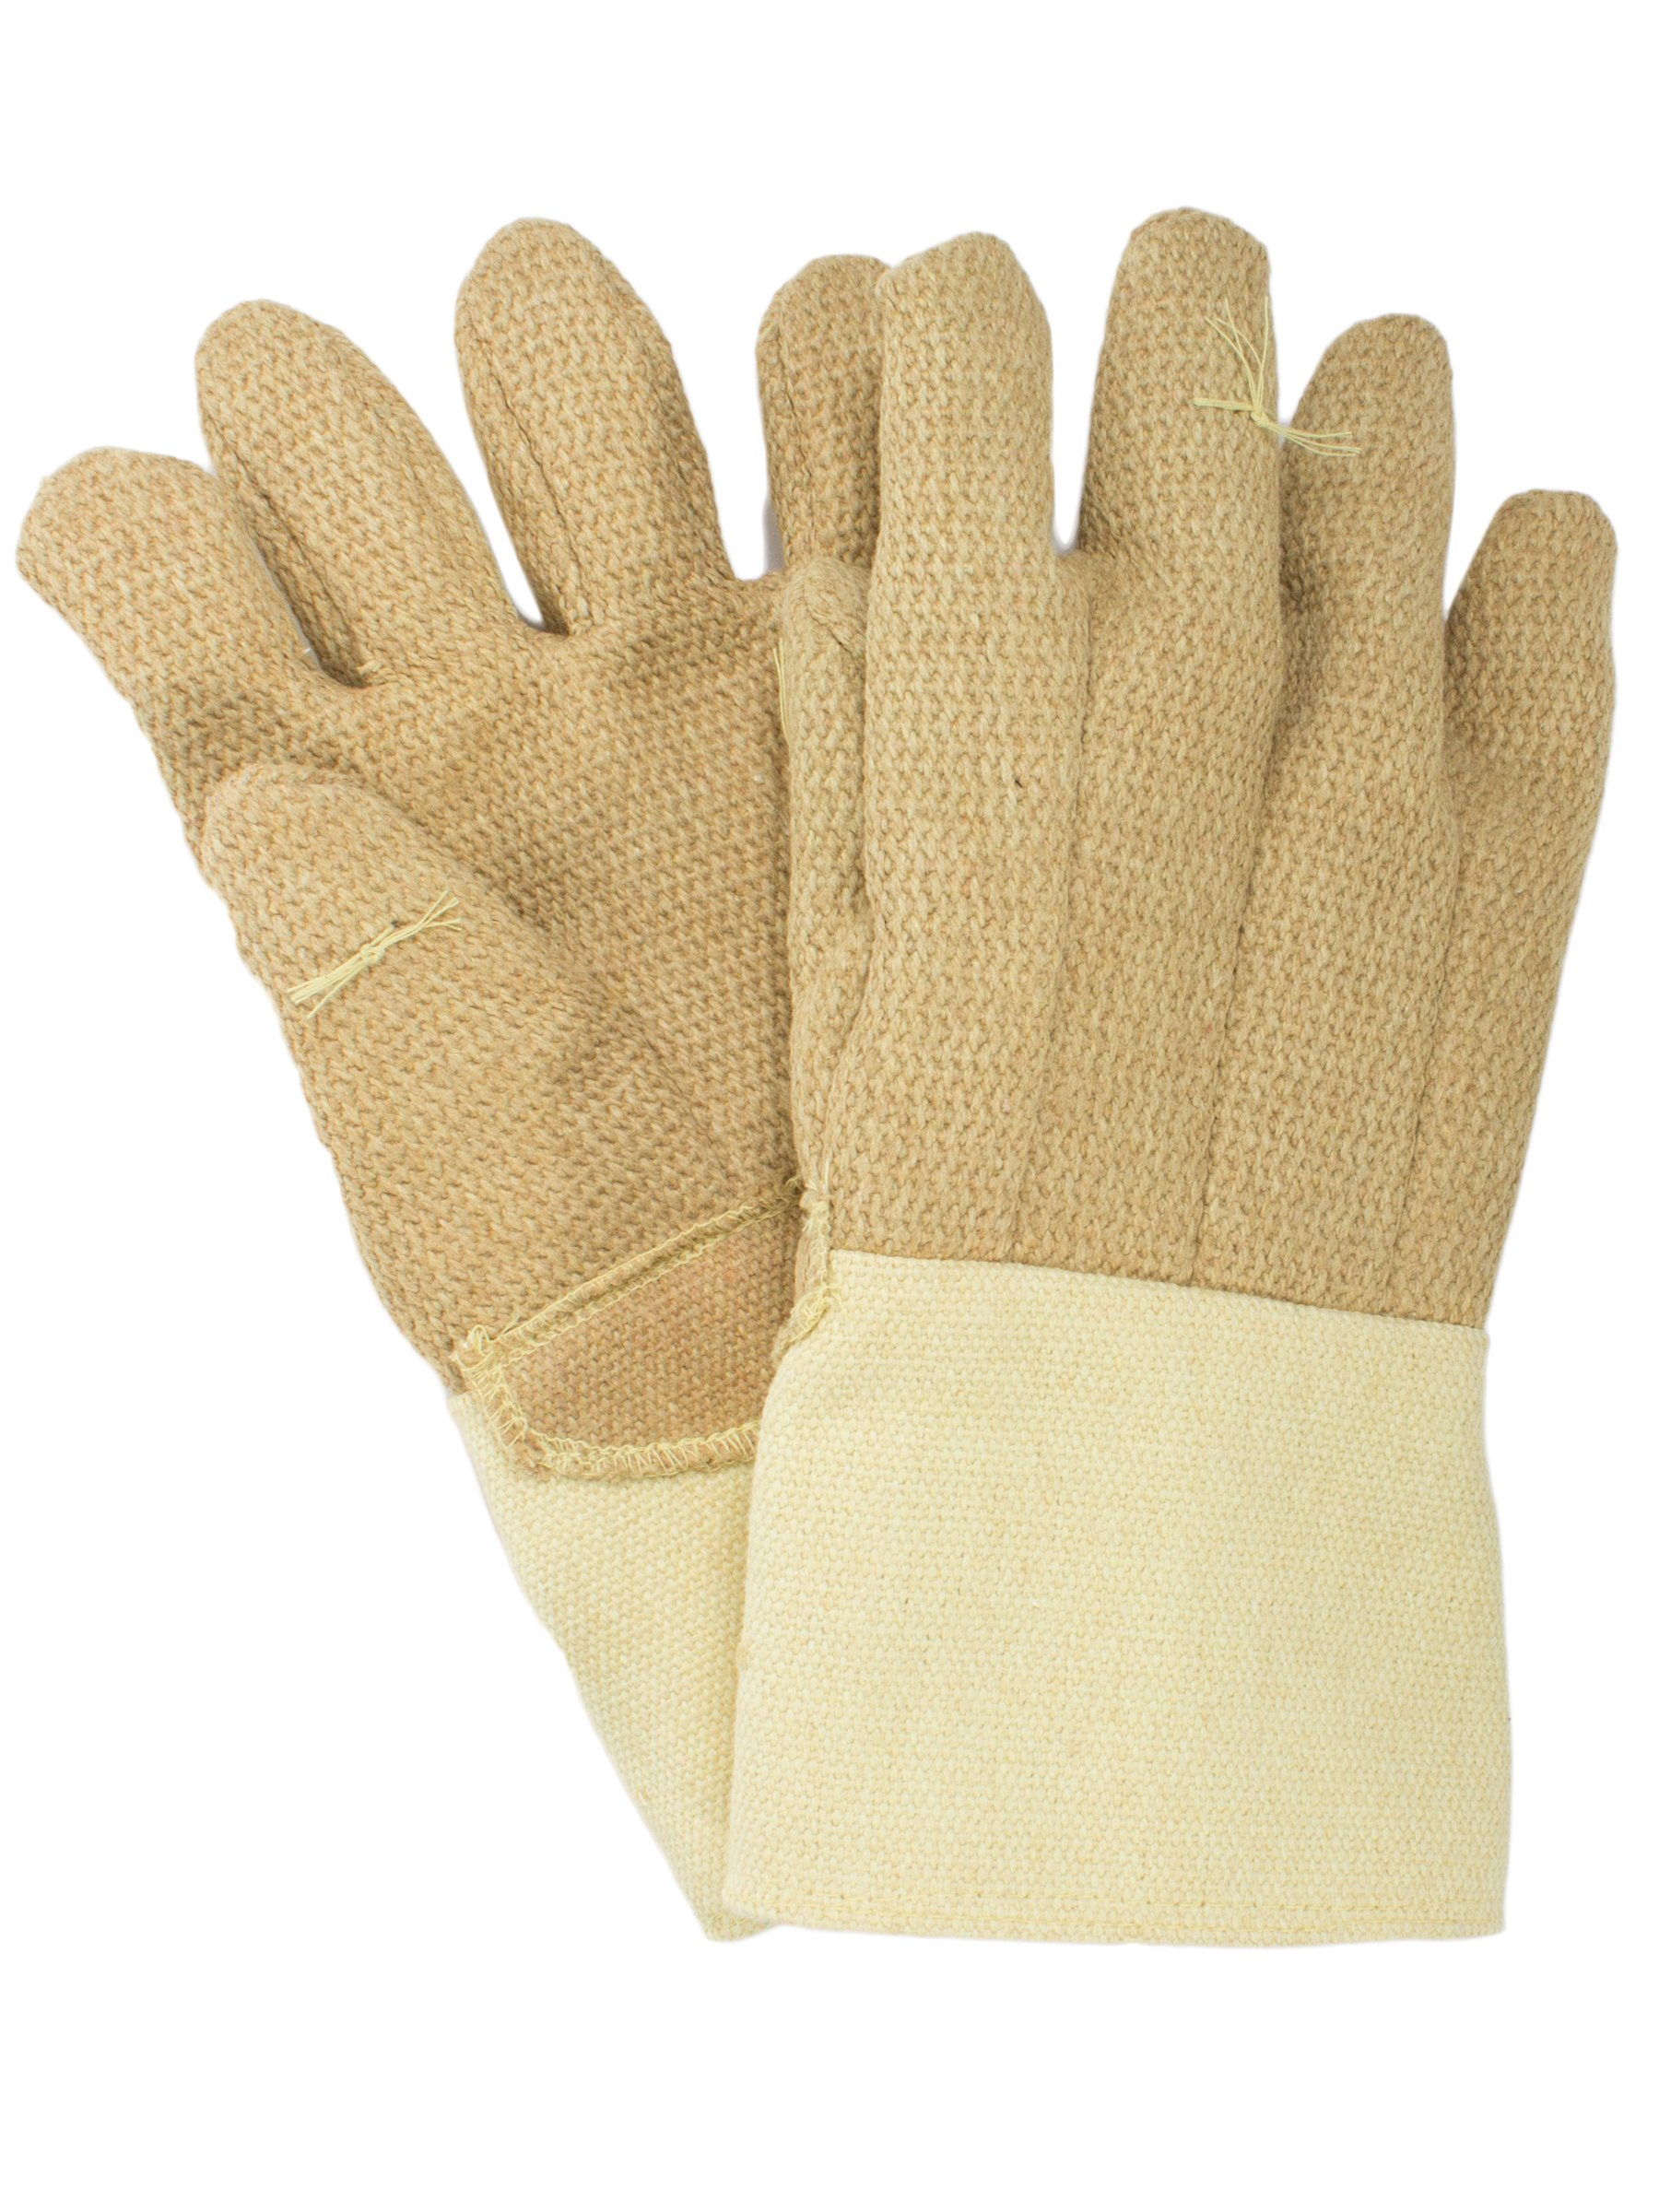 National Safety Apparel G51PBRW13714 PBI/Kevlar Glove with Thermobest Cuff, 22 oz., Large, Yellow